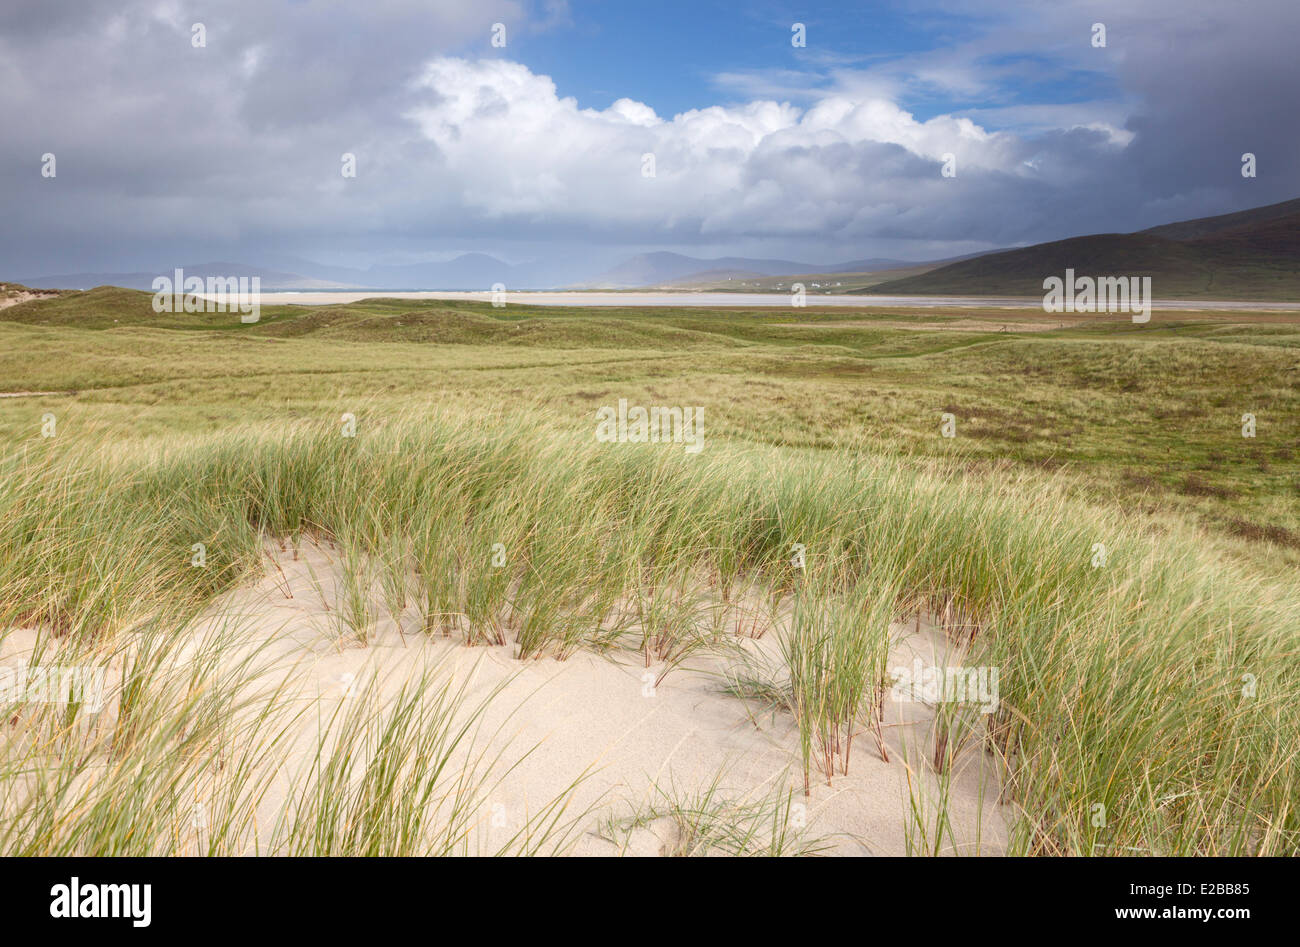 Looking North from the coast near Northton, Isle of Harris, outer Hebrides, Scotland - Stock Image